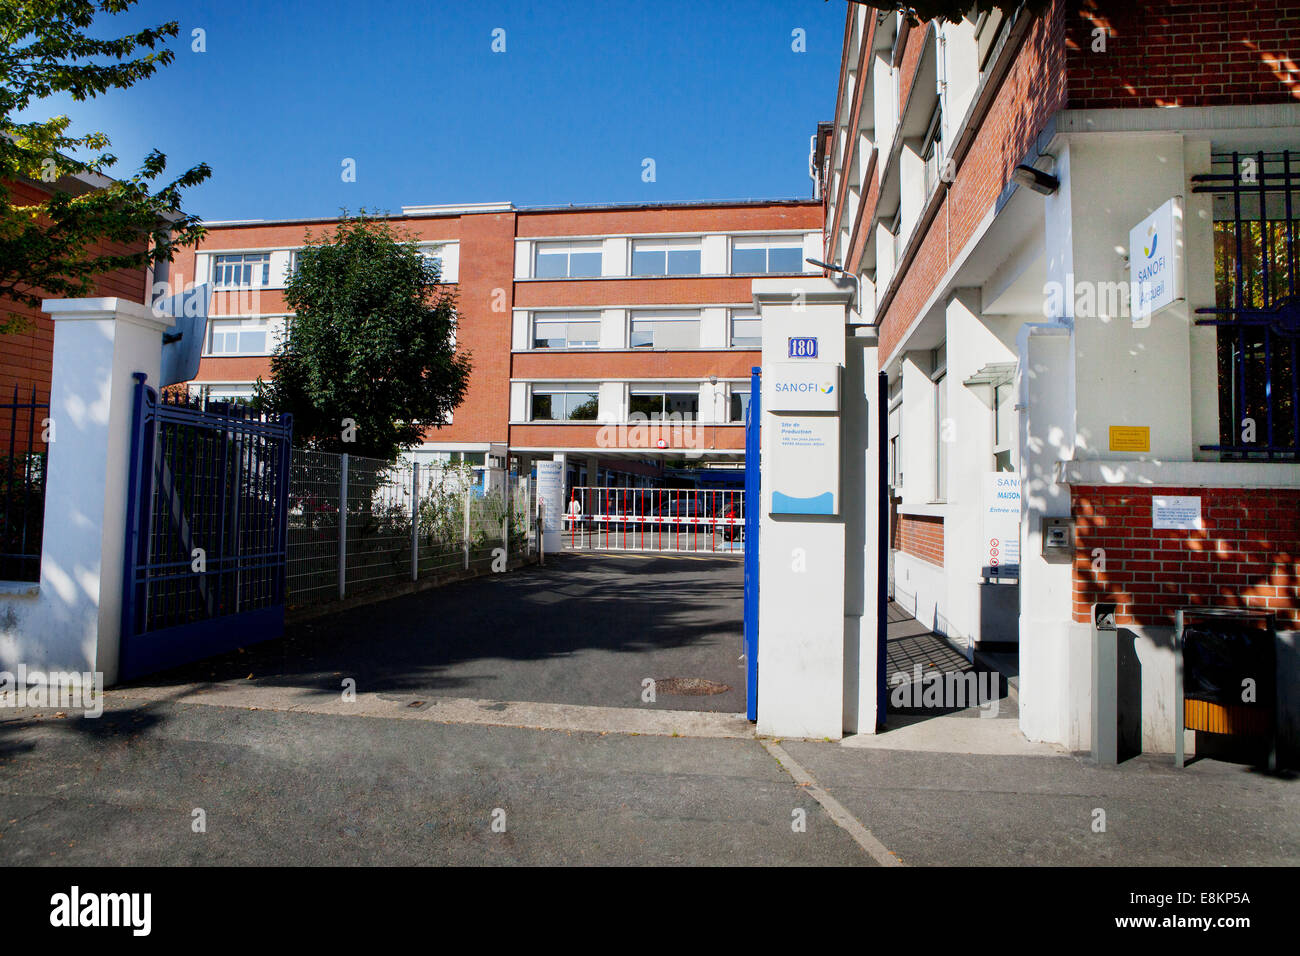 Maisons Alfort High Resolution Stock Photography And Images Alamy